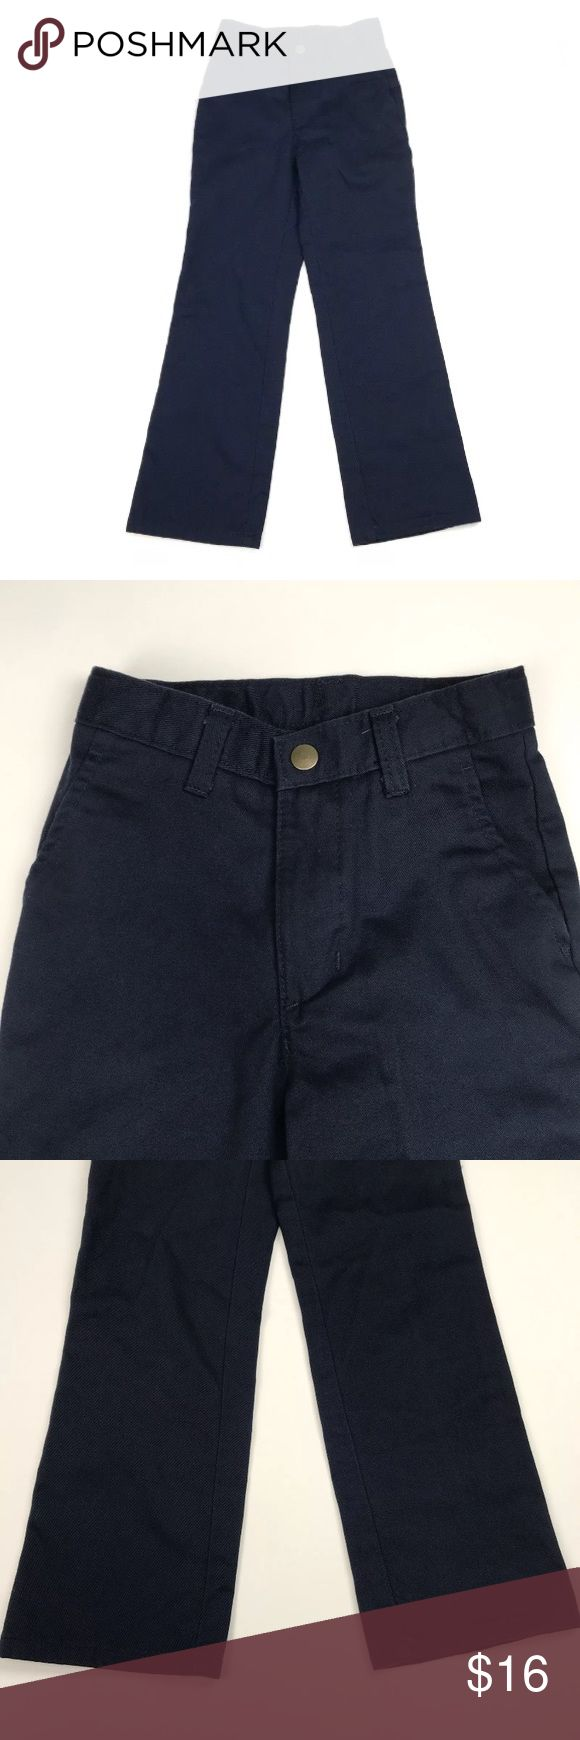 IZOD Slim Fit Dress Pants Size 7 Boys size 7 navy blue IZOD Slim Fit dress pants. 100% cotton.  Comes from a smoke free home!   Pre-owned. In good condition. No rips, tears, holes or stains. Izod Bottoms